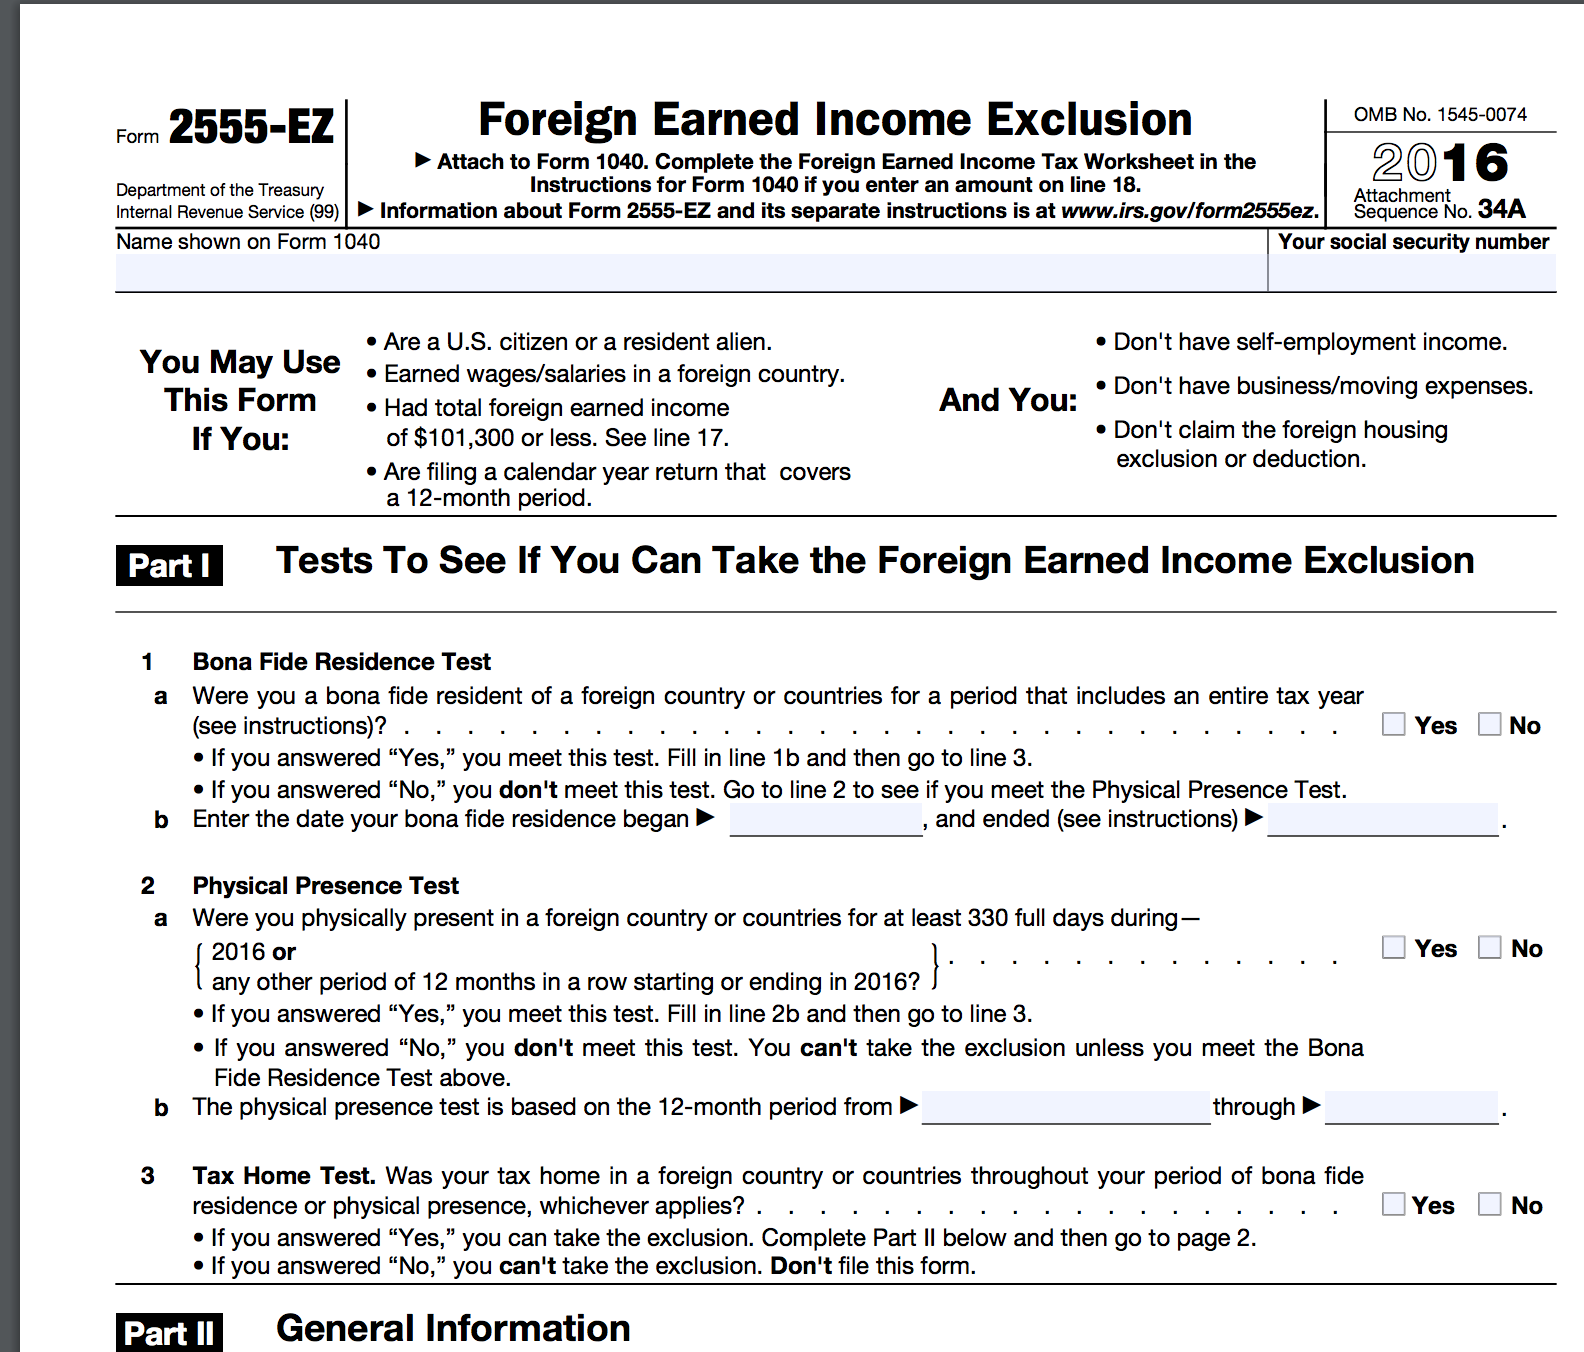 Us Tax Question Do You Have To Have A Tax Home In Another Country To Qualify For The Foreign Earned Income Tax Questions This Or That Questions Peace Index